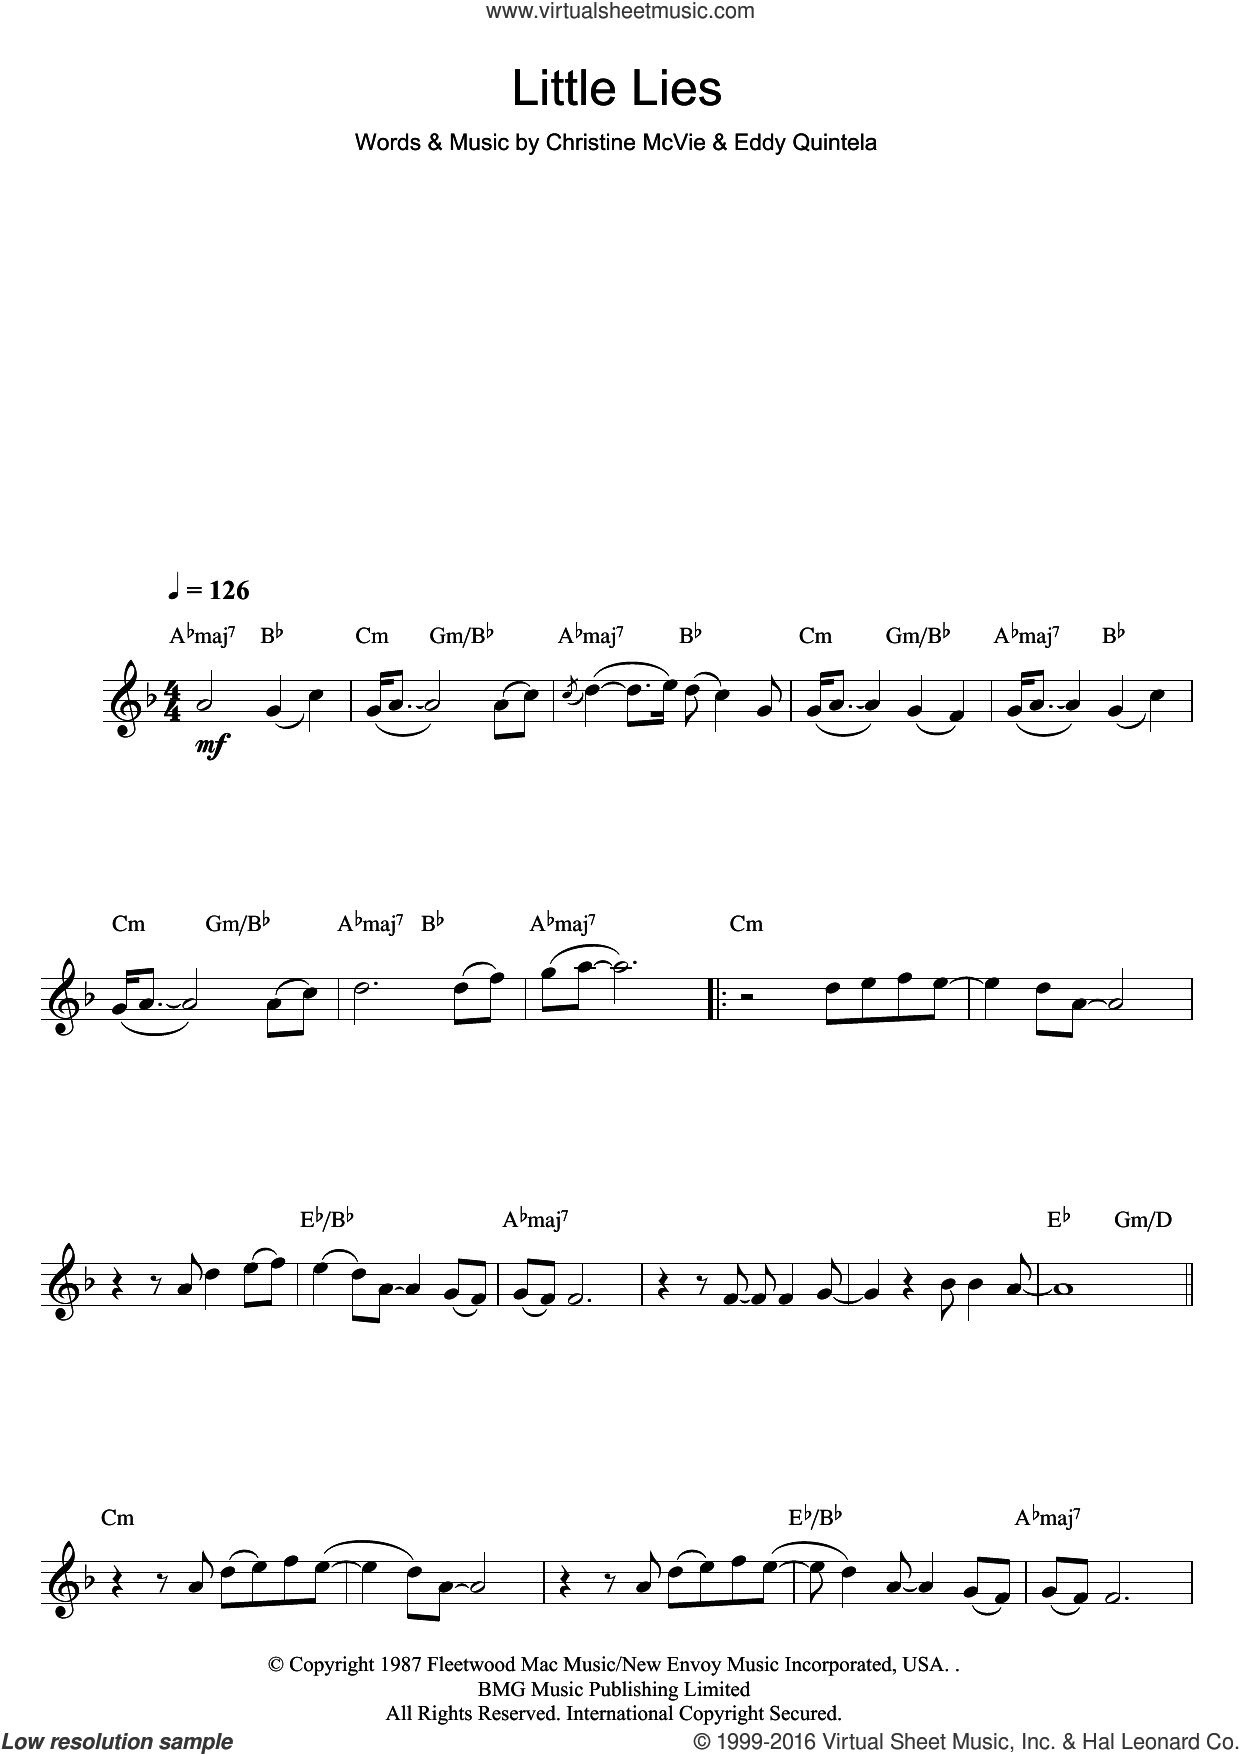 Little Lies sheet music for clarinet solo by Eddy Quintela, Fleetwood Mac and Christine McVie. Score Image Preview.